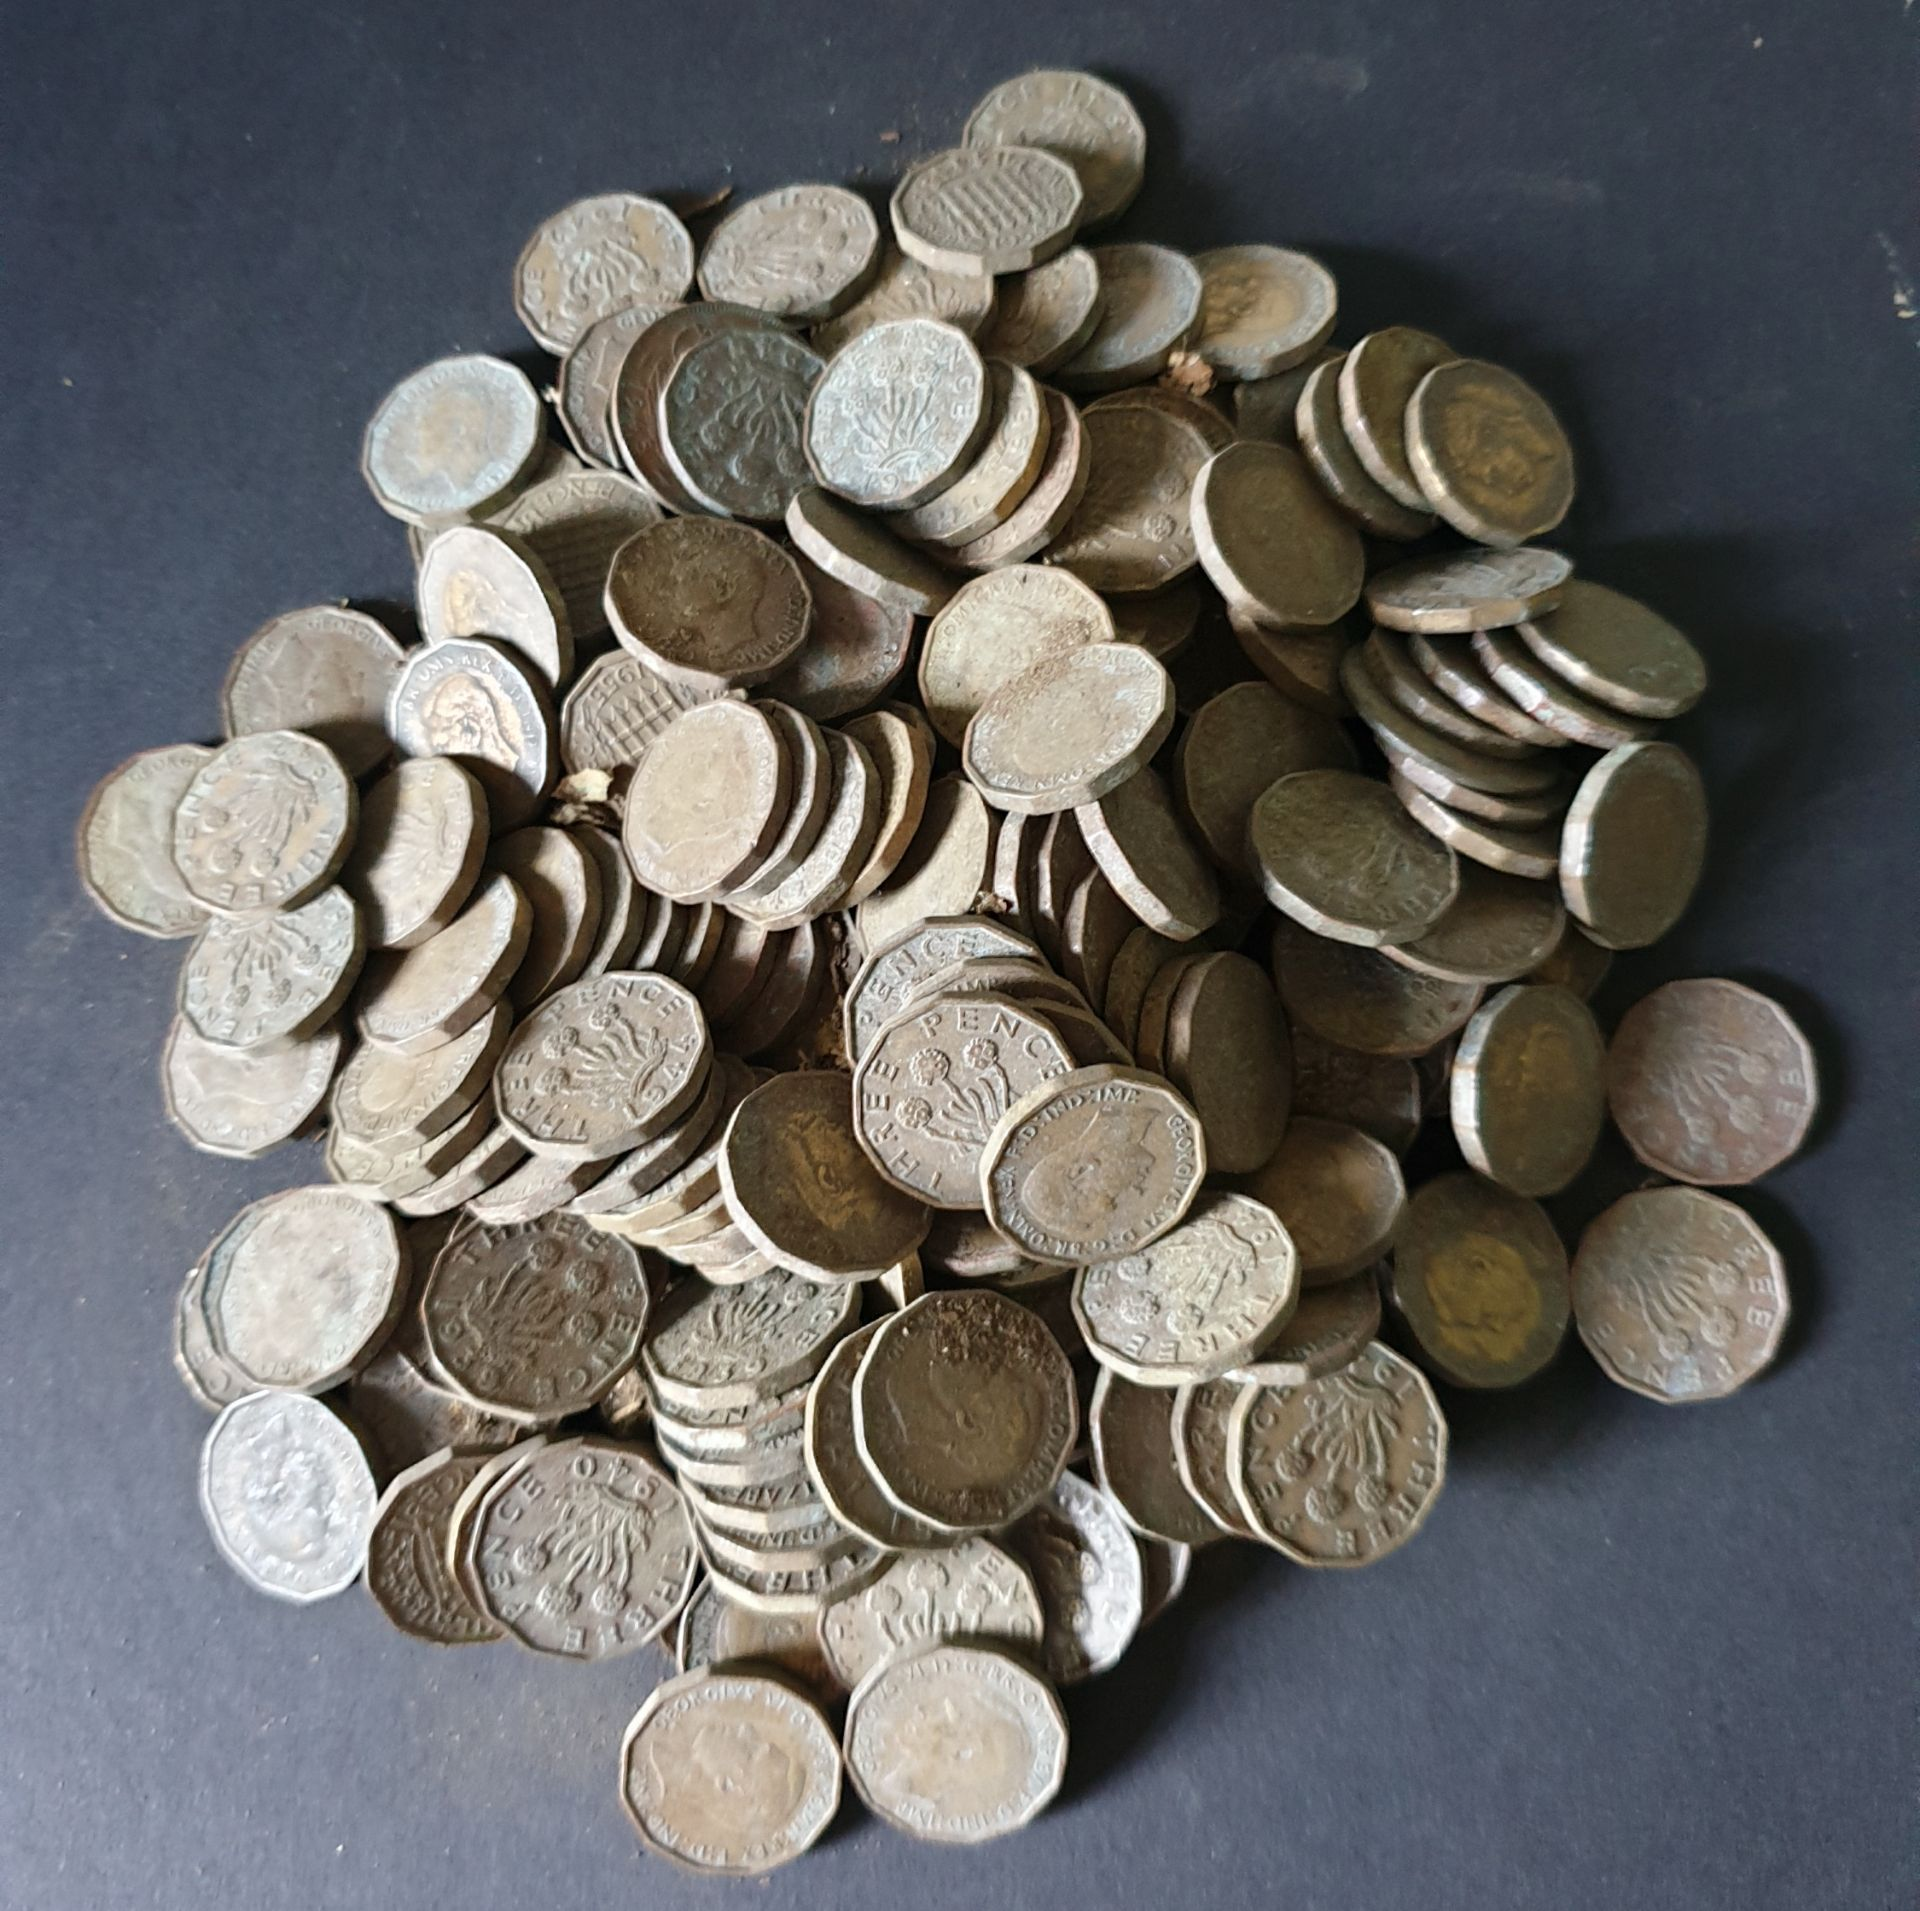 Lot 60 - Collectable Coins 800g Bag of British Three Penny Bits NO RESERVE